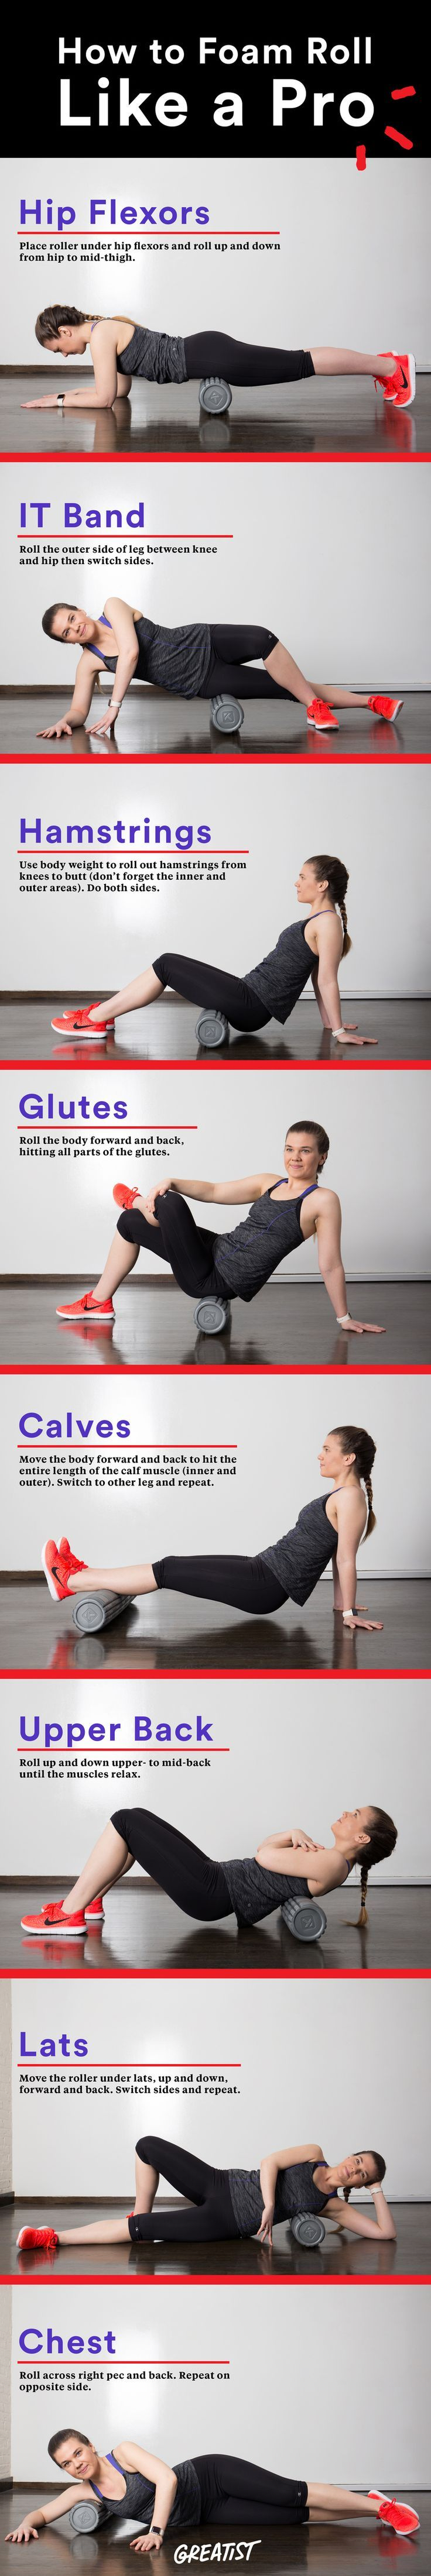 Want to improve flexibility, performance, and reduce injuries? Get to know the foam roller. #fitness http://greatist.com/fitness/how-foam-roll-pro